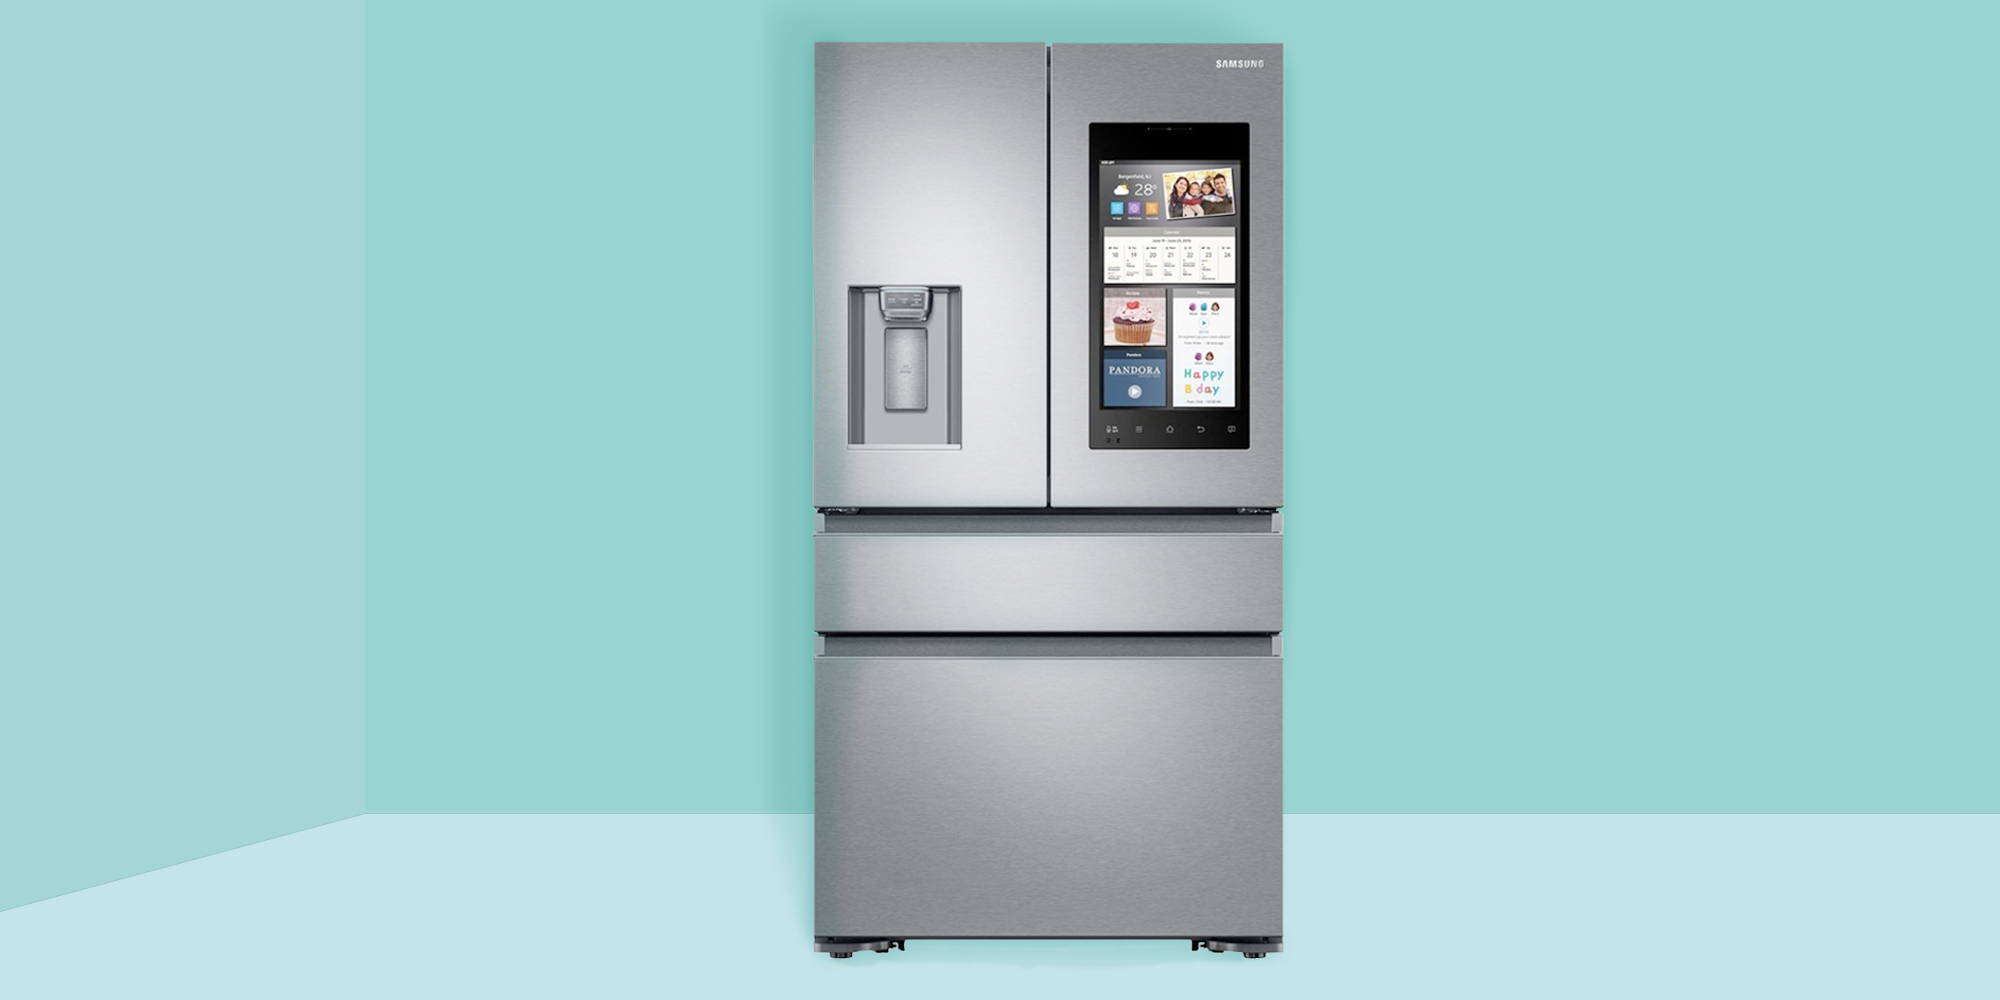 7 Best Counter Depth Refrigerators, According To Kitchen Appliance Experts    Top Counter Depth Refrigerator Reviews